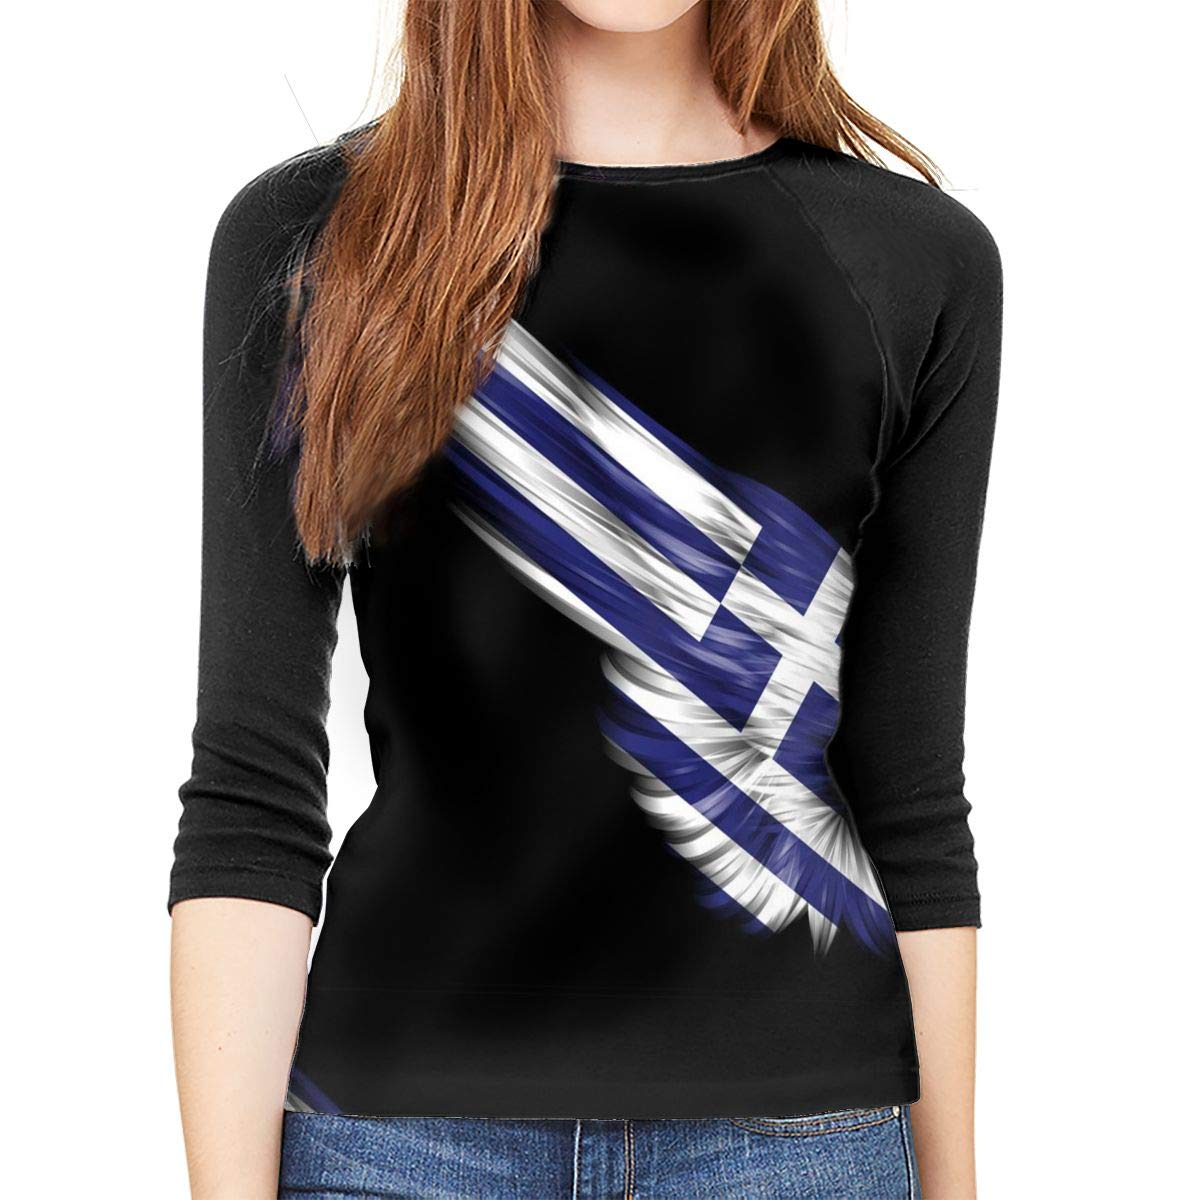 SHDFhgHGF The Wings of The Greek Flag Womens 3//4 Sleeve Casual Scoop Neck Tops Tee